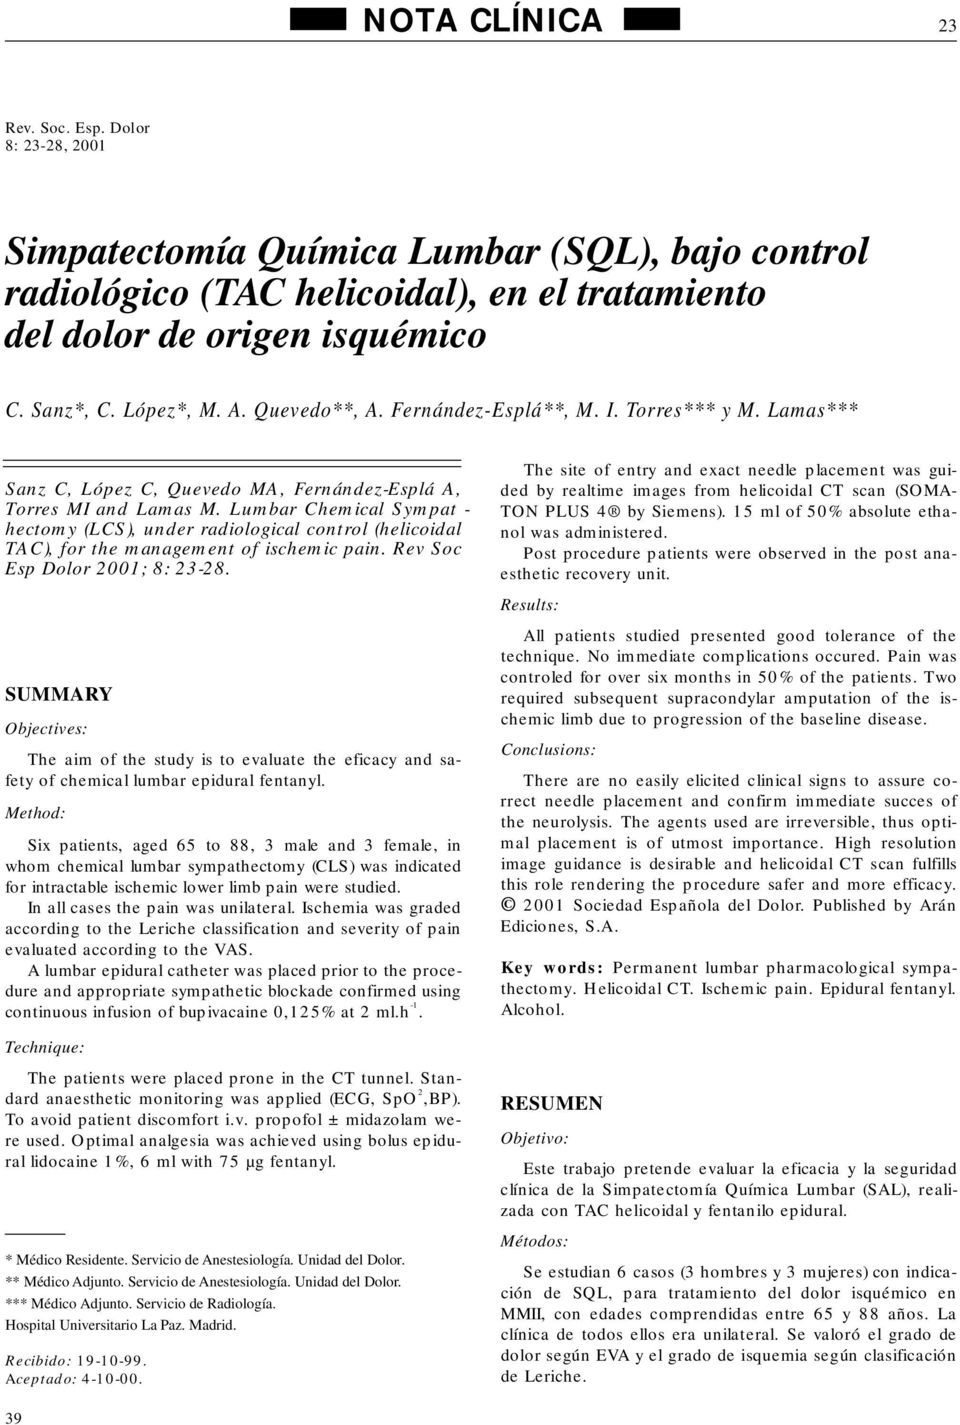 Lumbar Chemical Sympat - hectomy (LCS), under radiological control (helicoidal TAC), for the management of ischemic pain. Rev Soc Esp Dolor 2001; 8: 23-28.